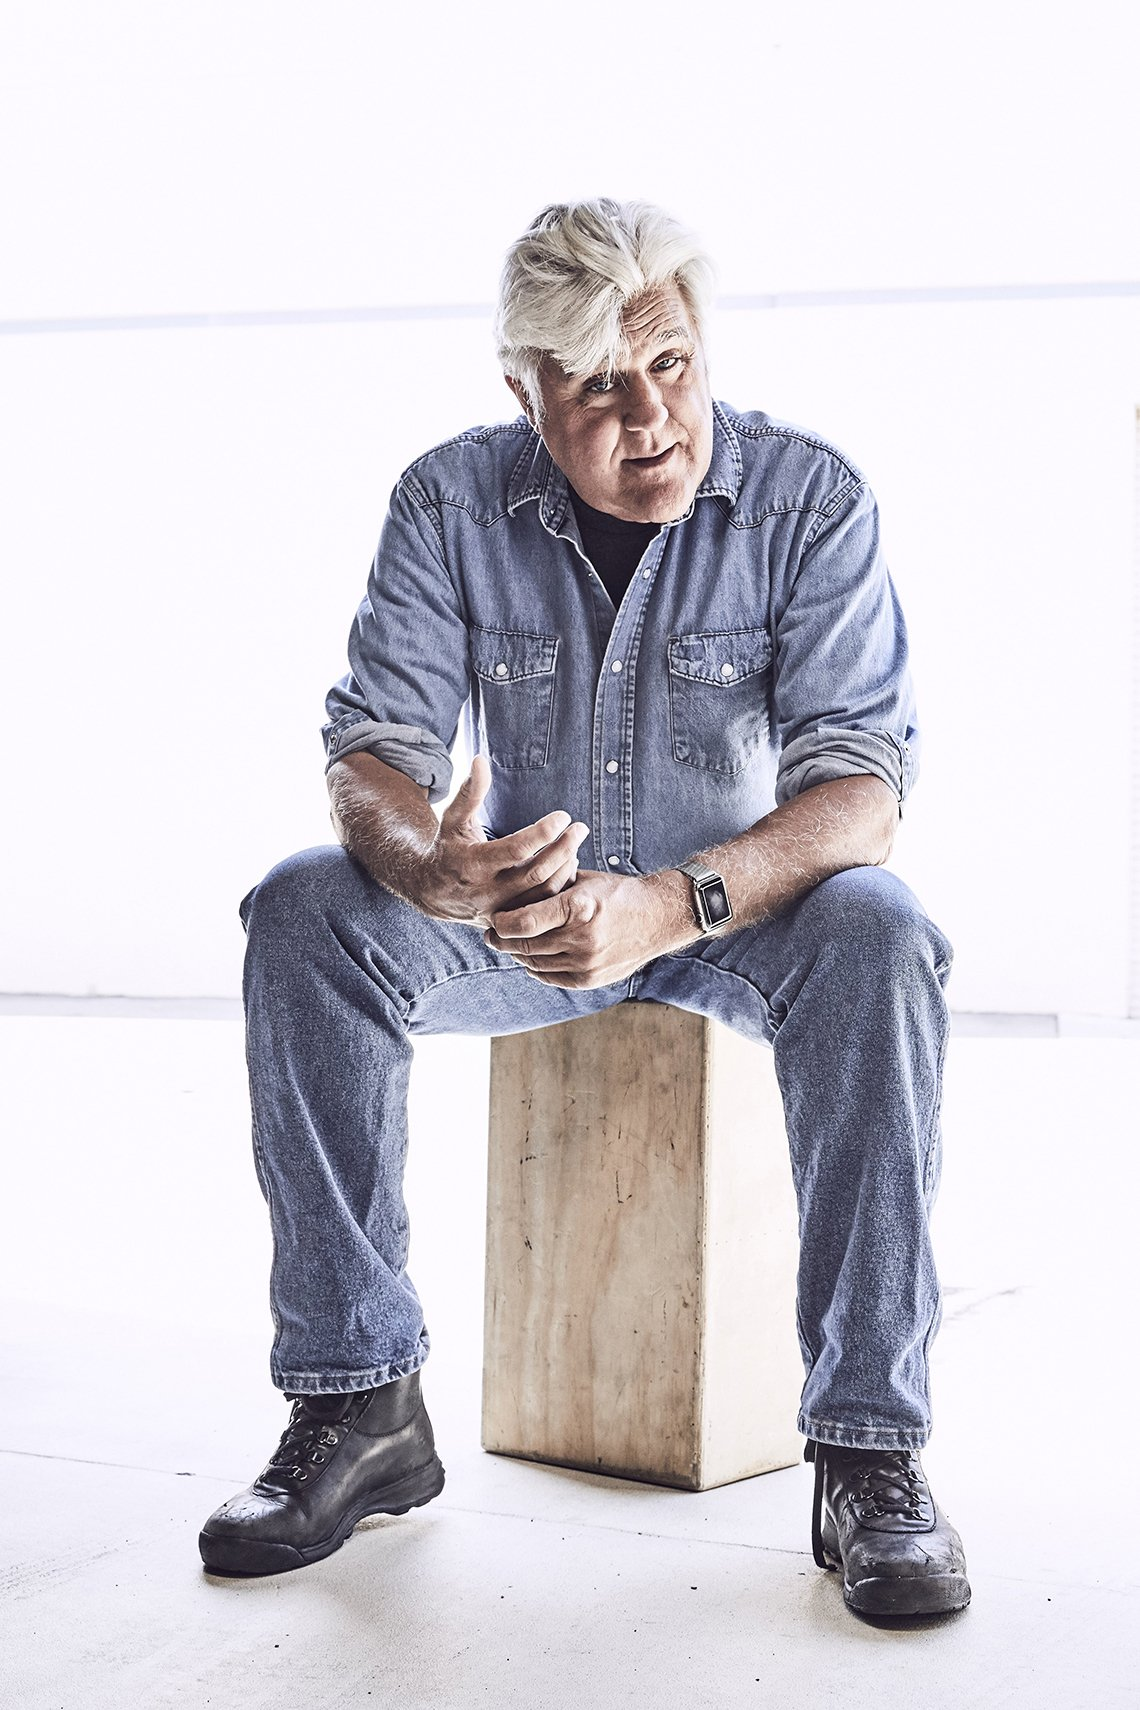 Comedian and former talk show host Jay Leno